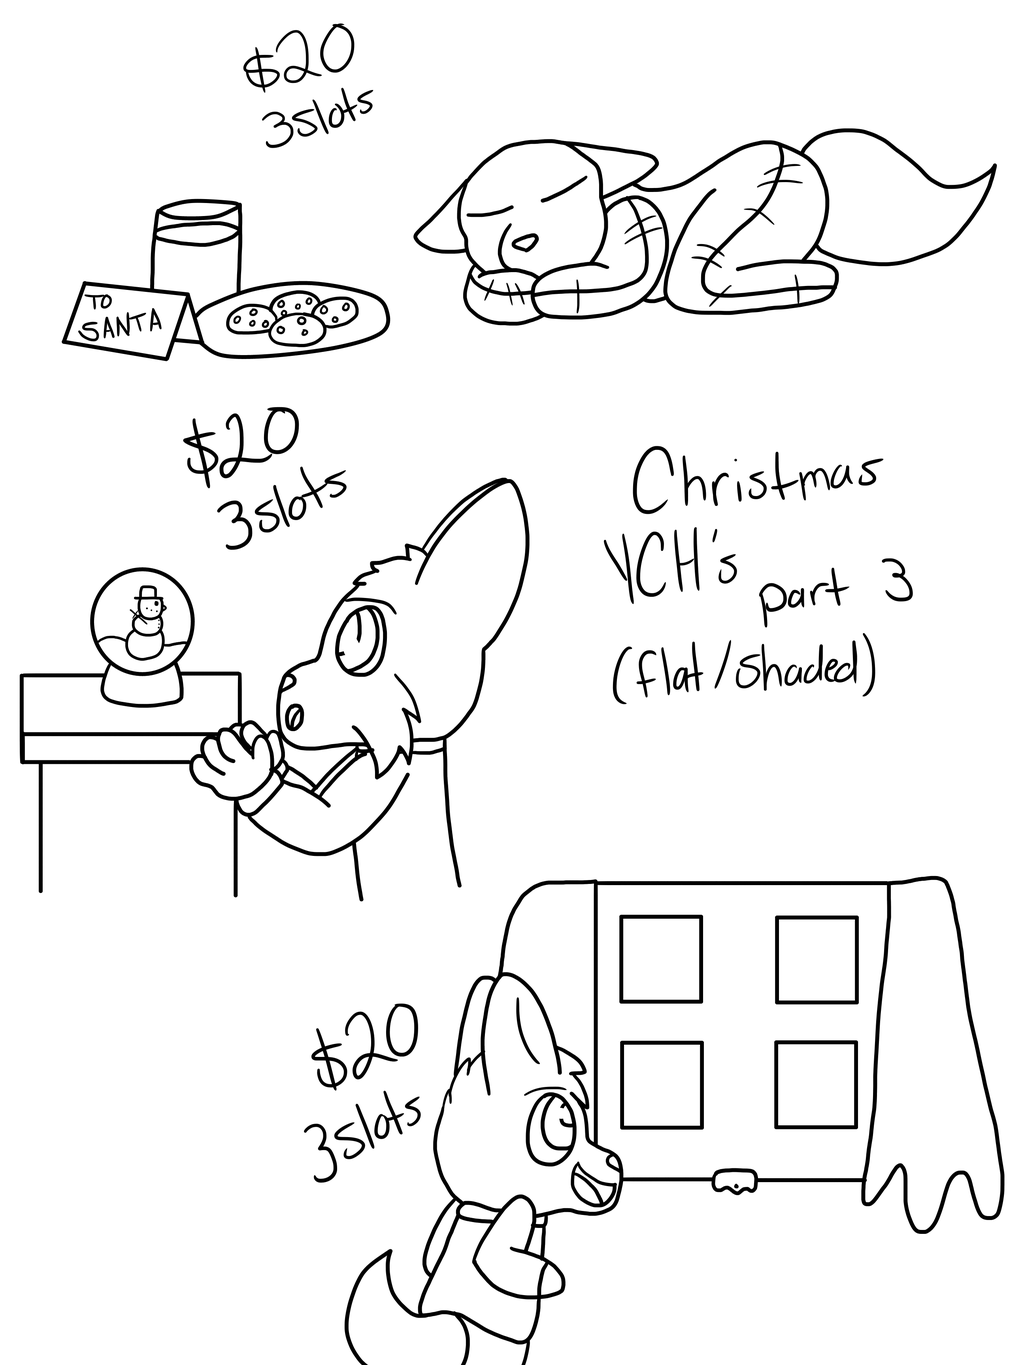 Most recent image: X-Mas YCH's OPEN [Part 3]